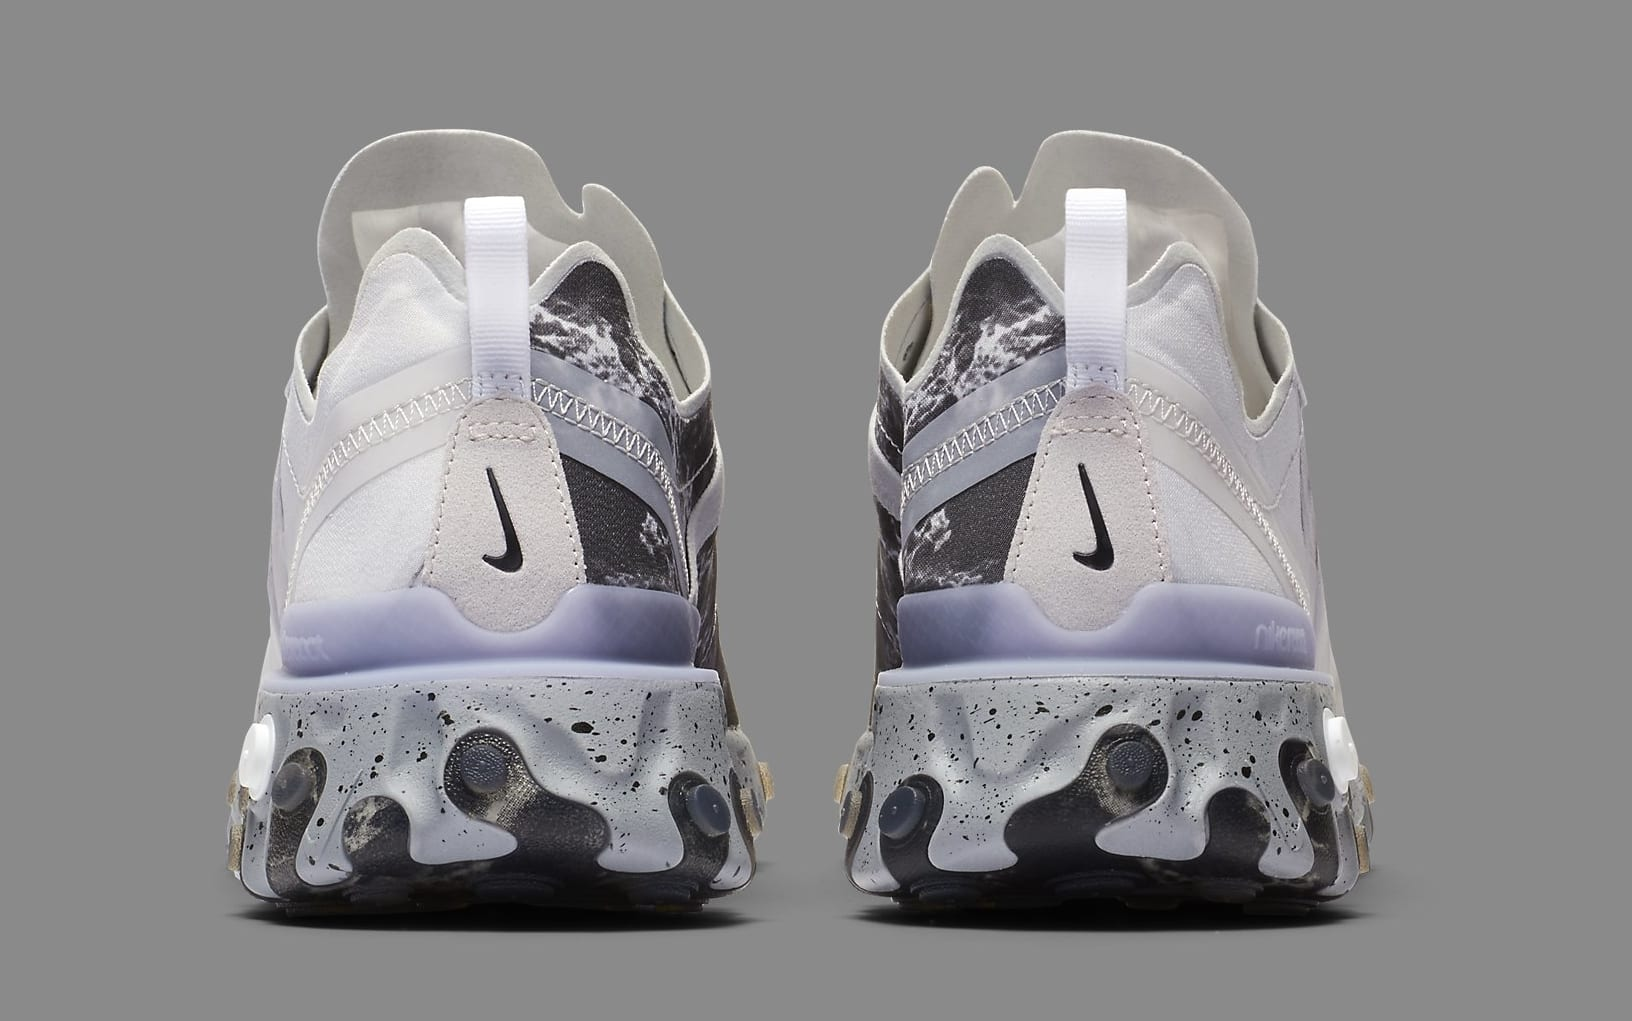 nike-react-element-55-kendrick-we-are-strap.webp 2.jpg 3